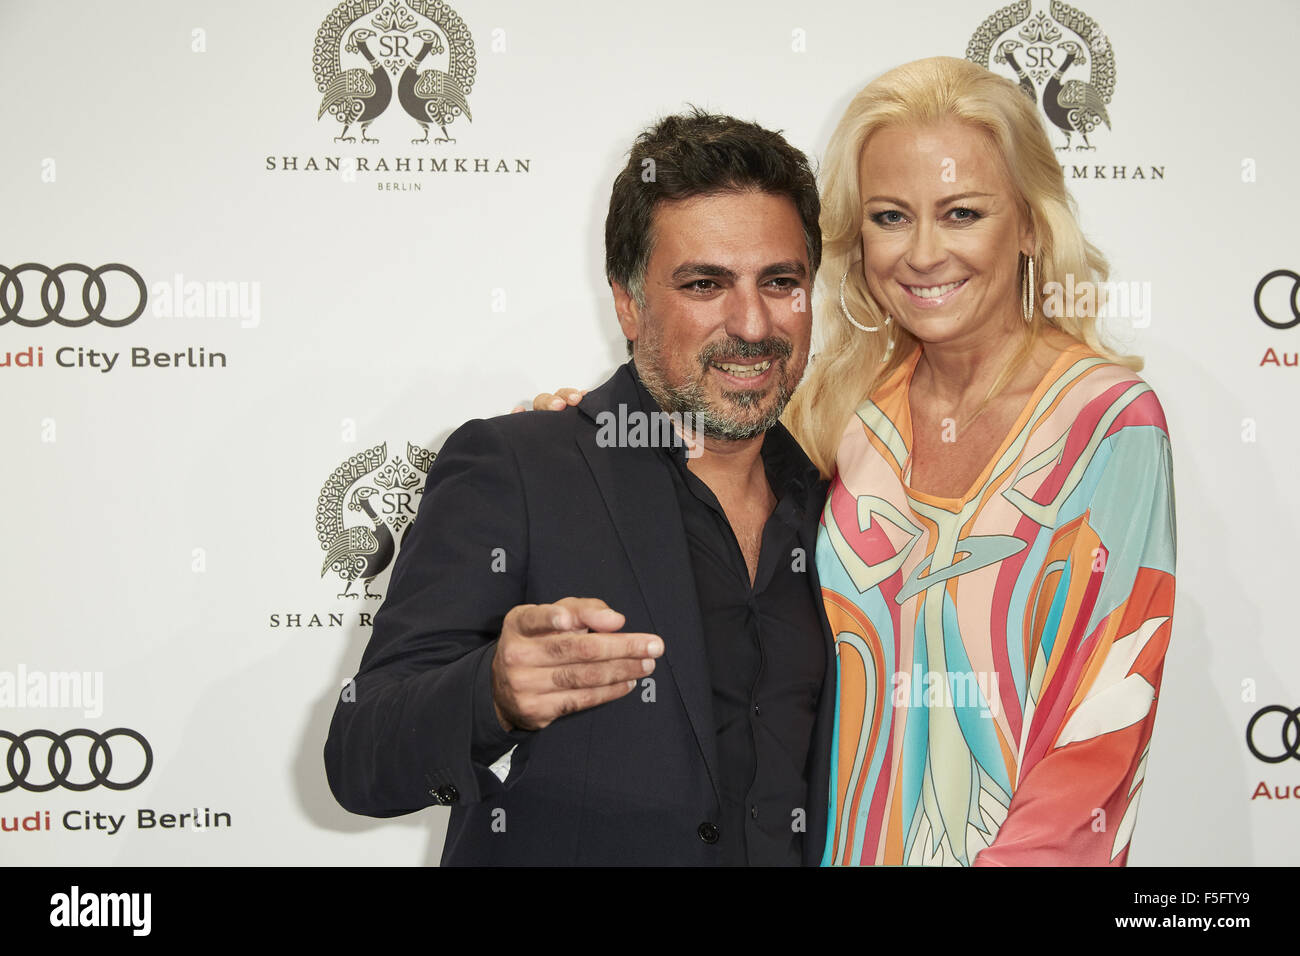 Shan Rahimkhan Berlin Red Carpet For True Berlin 3 By Shan Rahimkhan Party Featuring: Keld Stock Photo - Alamy